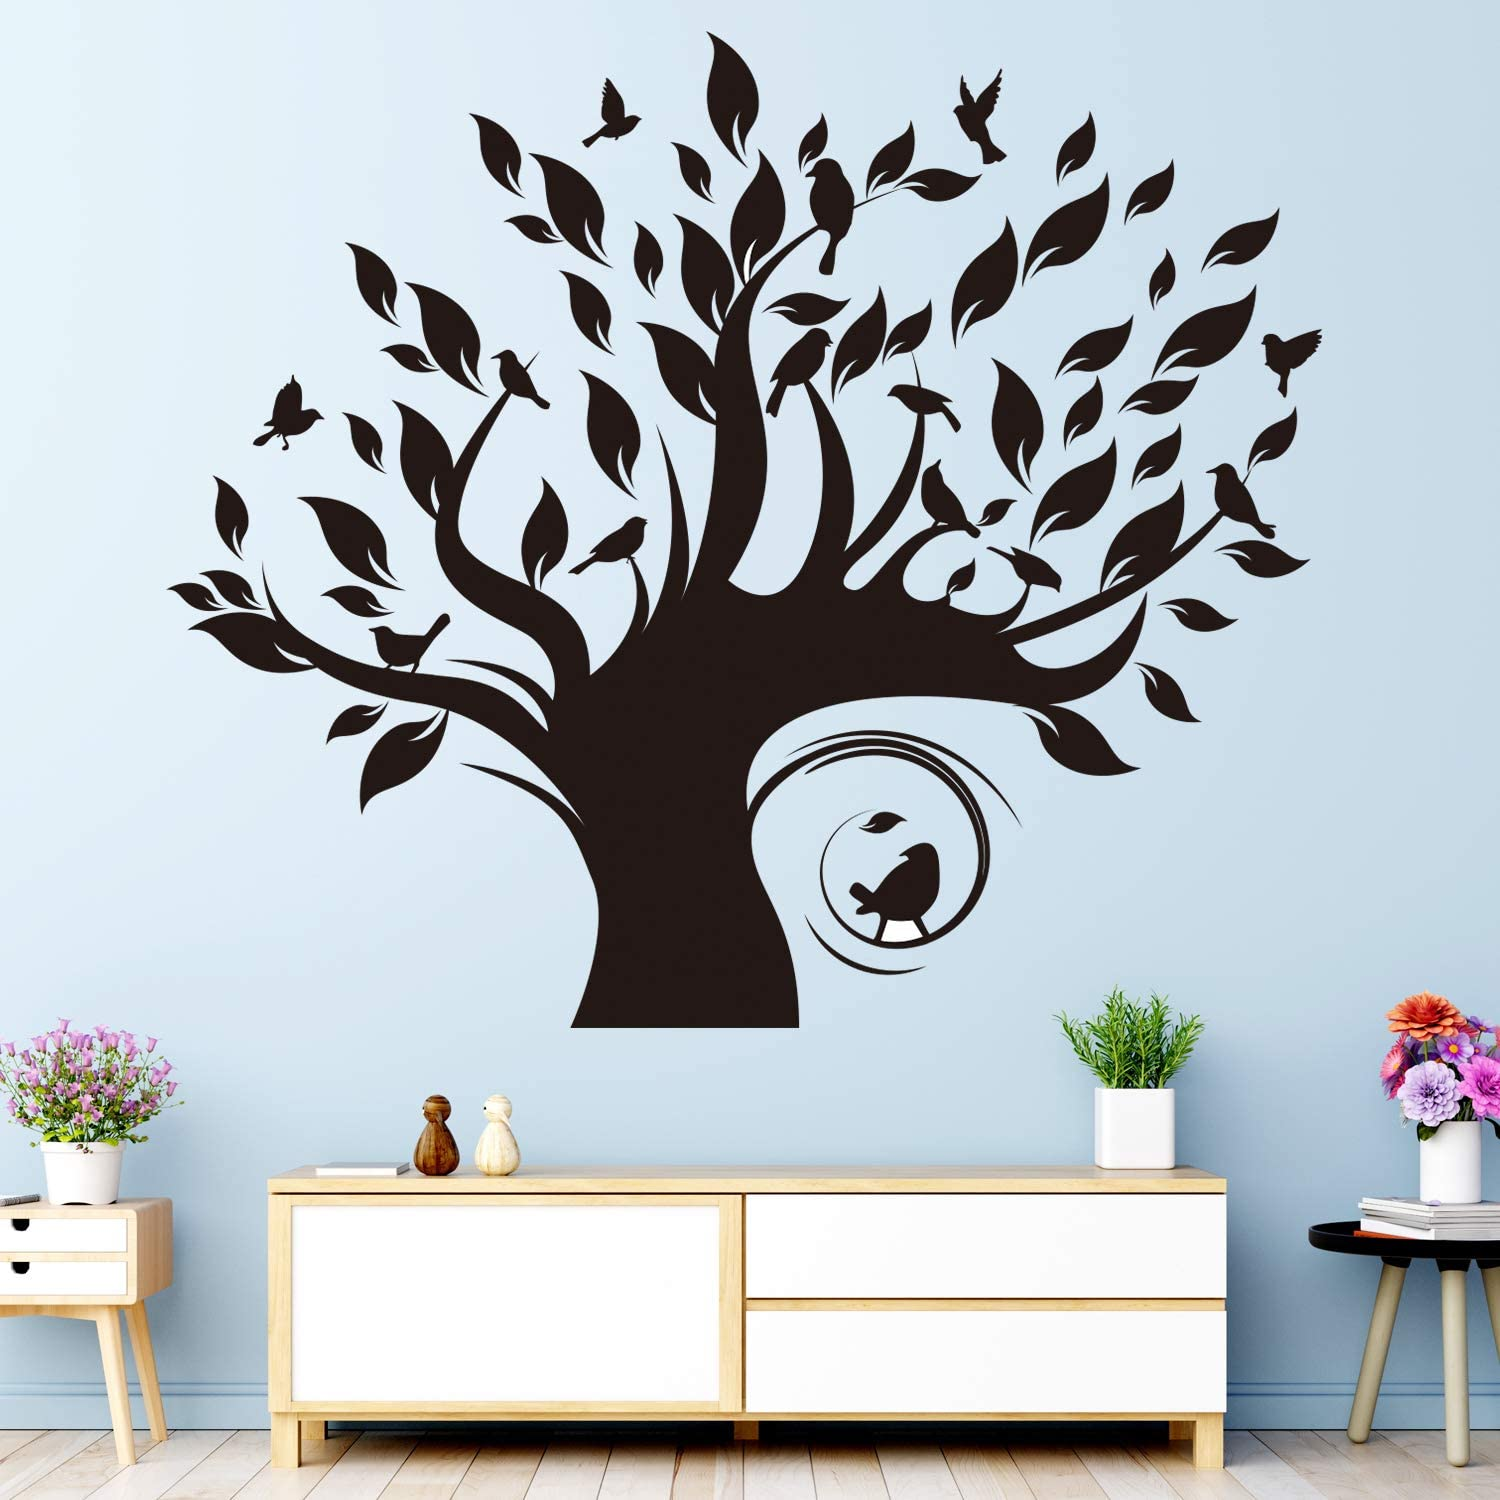 VODOE Tree Decal Wall, Family Tree Wall Decal, Beautiful Forest Nature Plant Bird Stickers Suitable for Kids Room Teen Nursery Boys Girls Living Room Vinyl Art Home Decor(Black 23.6X 20.4inches)